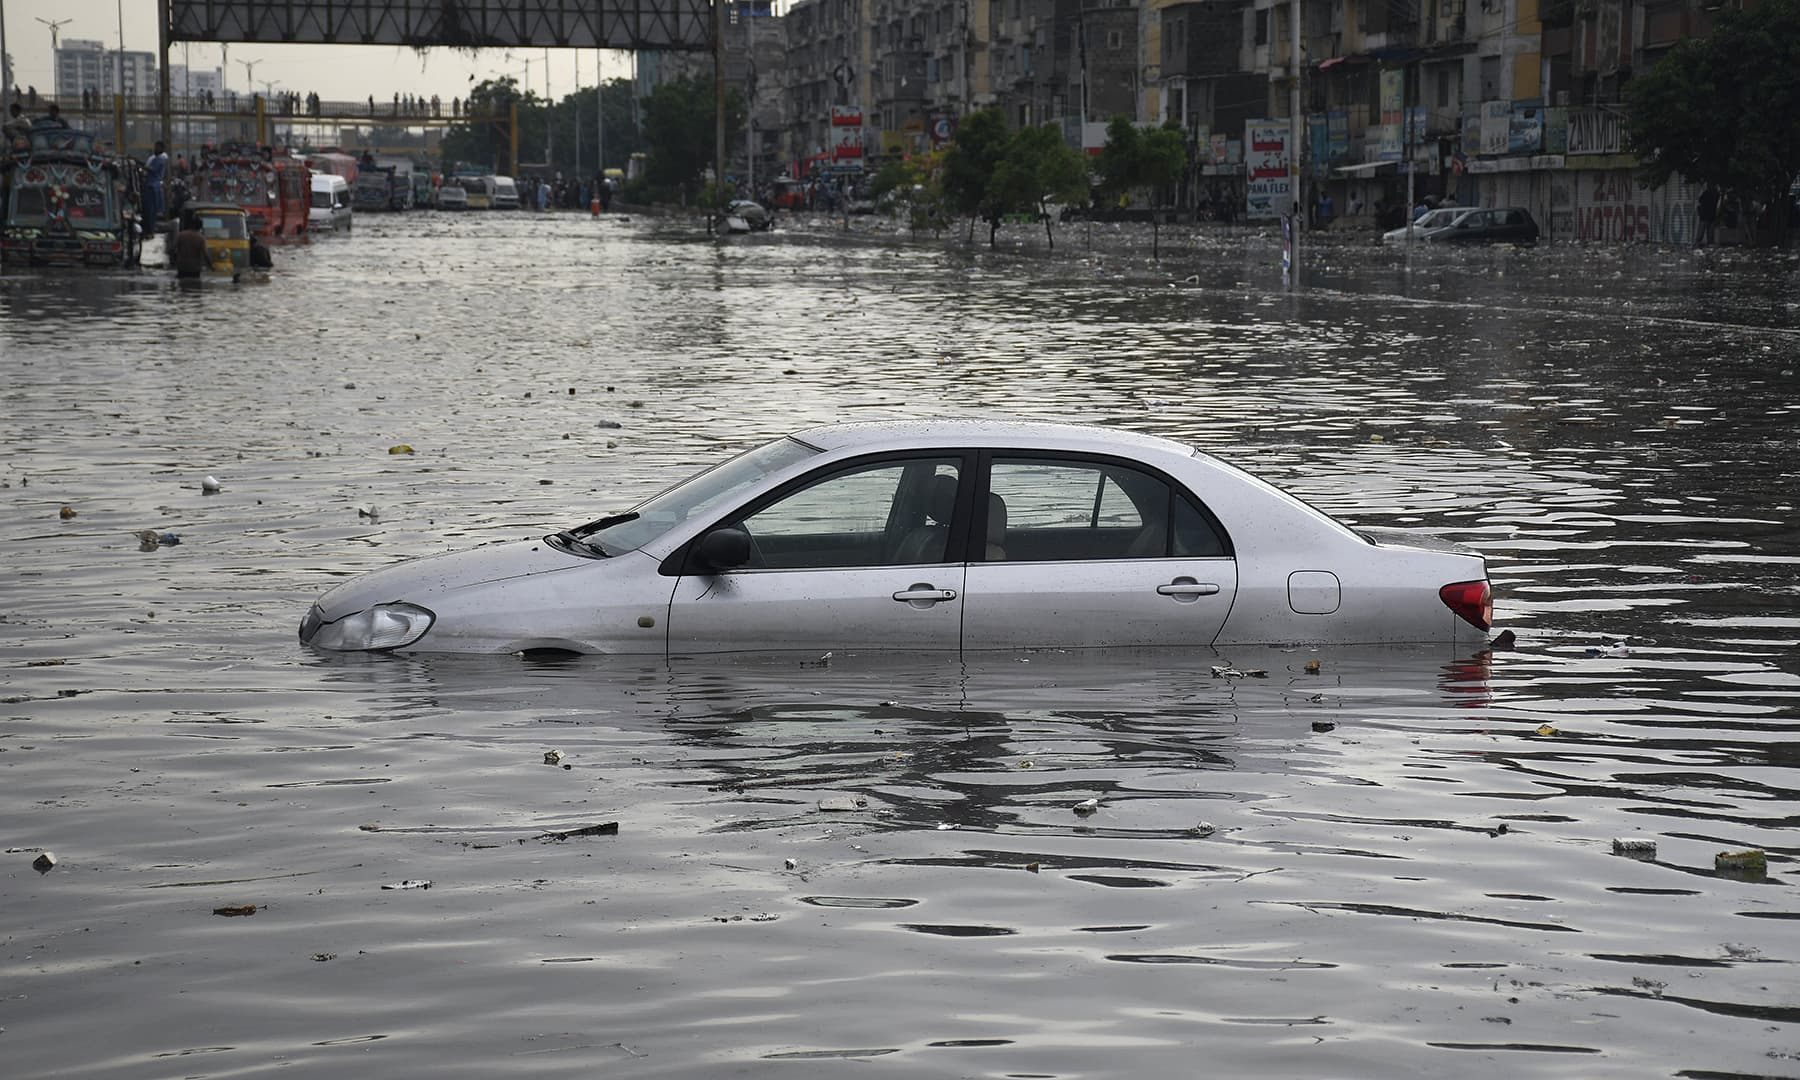 A car is submerged on a road after heavy rainfall in Karachi on Thursday. — AP